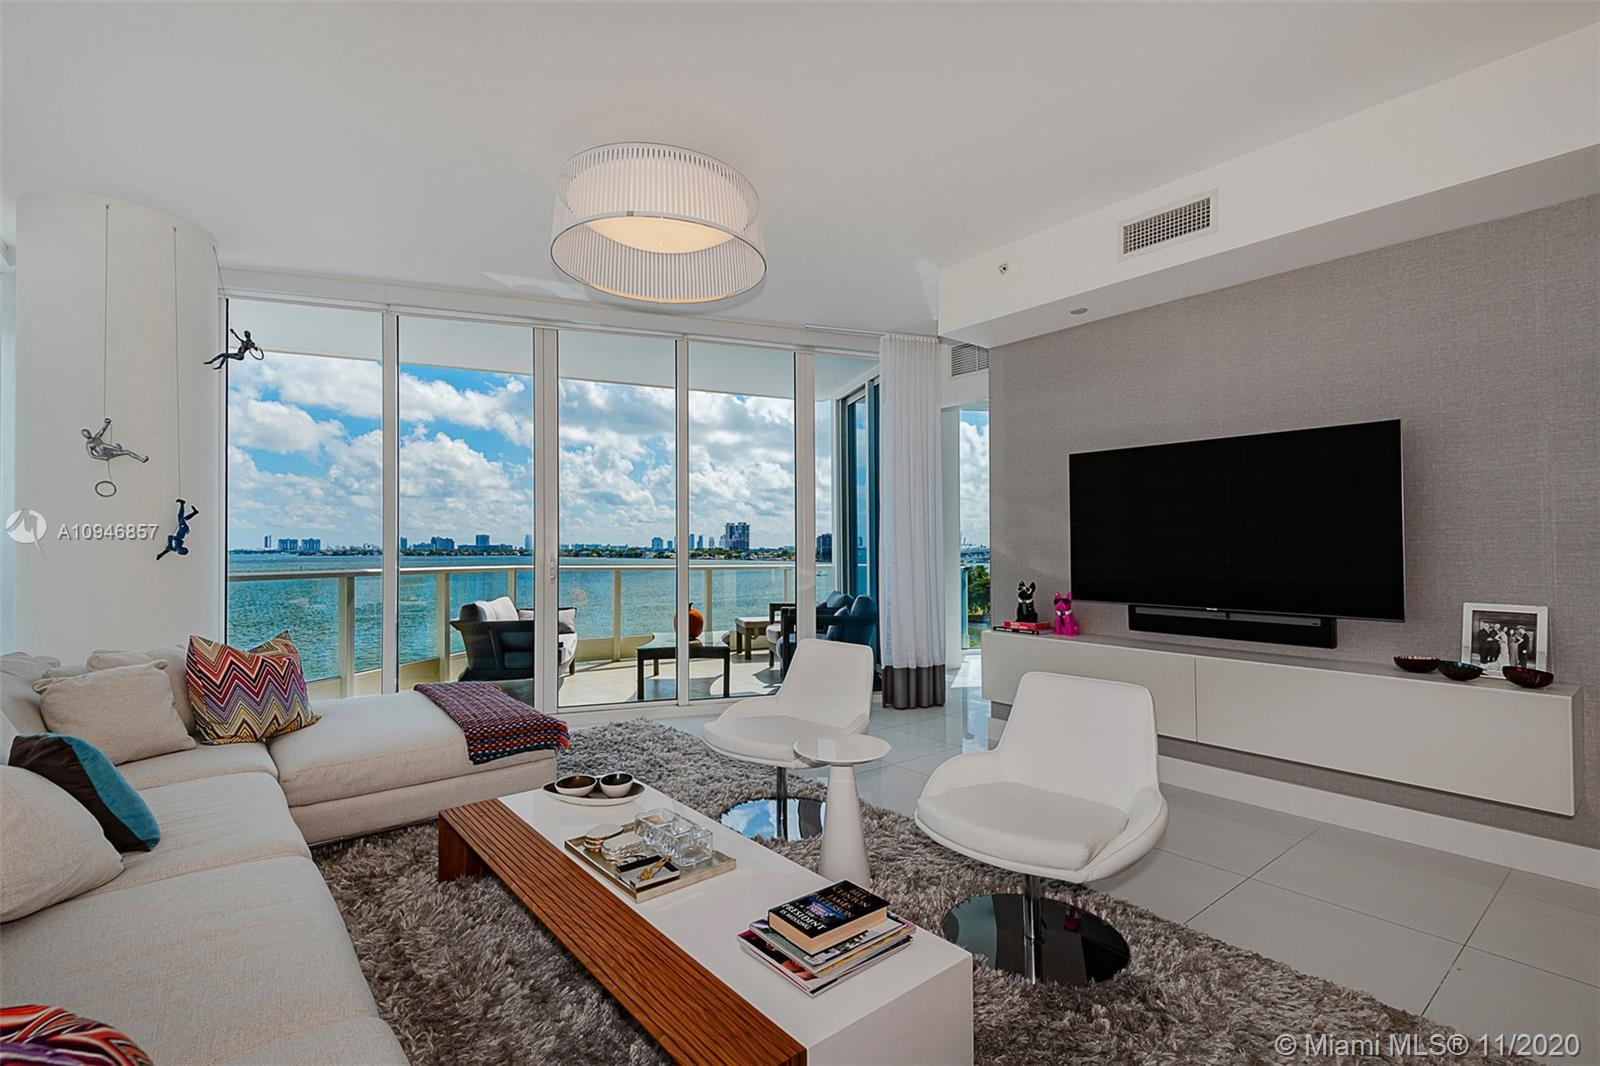 Welcome to luxury living in Edgewater's exclusive and well-regarded Paramount Bay. This exquisite, u